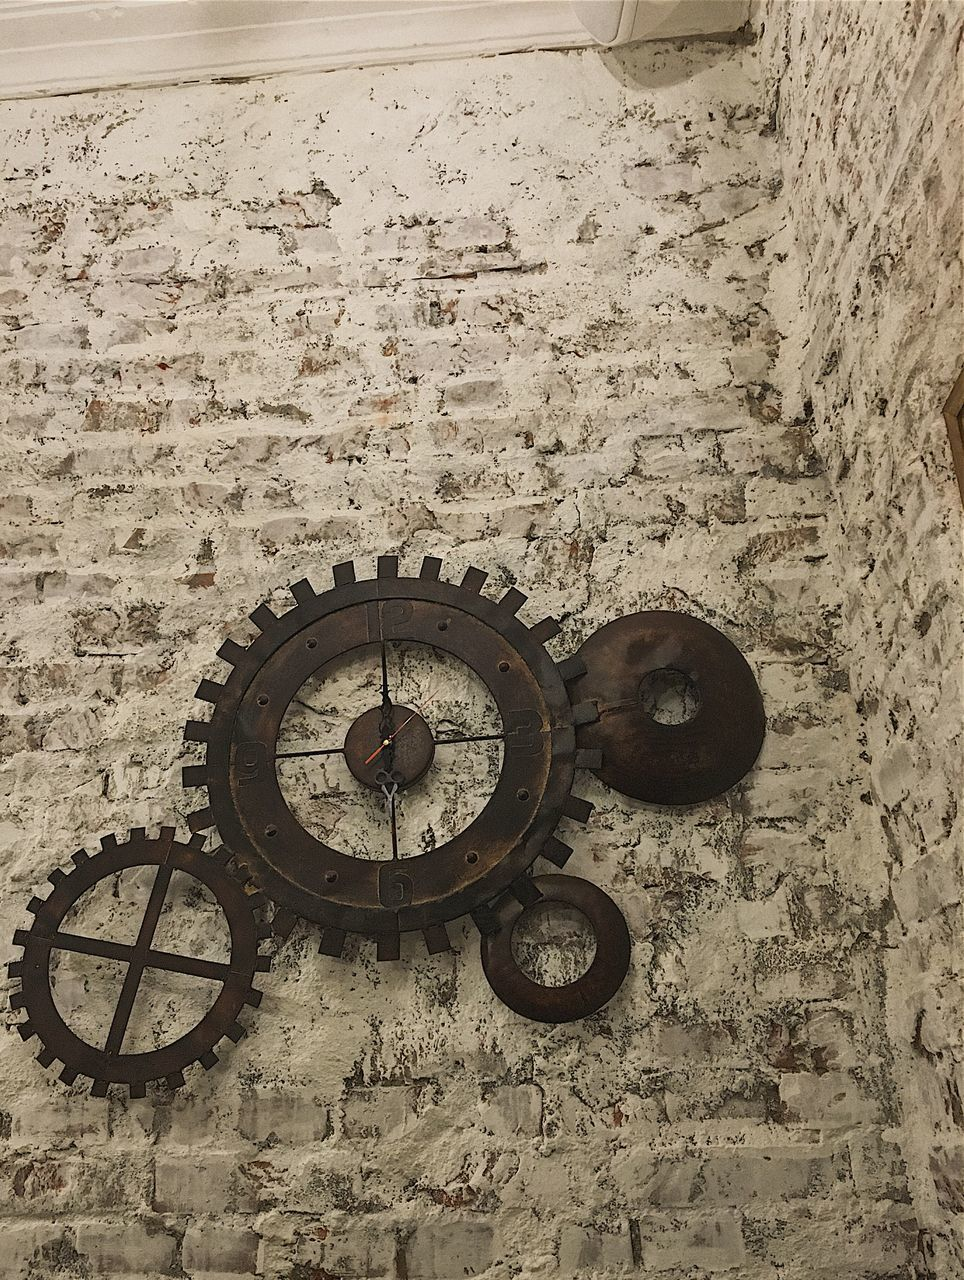 no people, machinery, day, gear, outdoors, time, clock, roman numeral, close-up, clock face